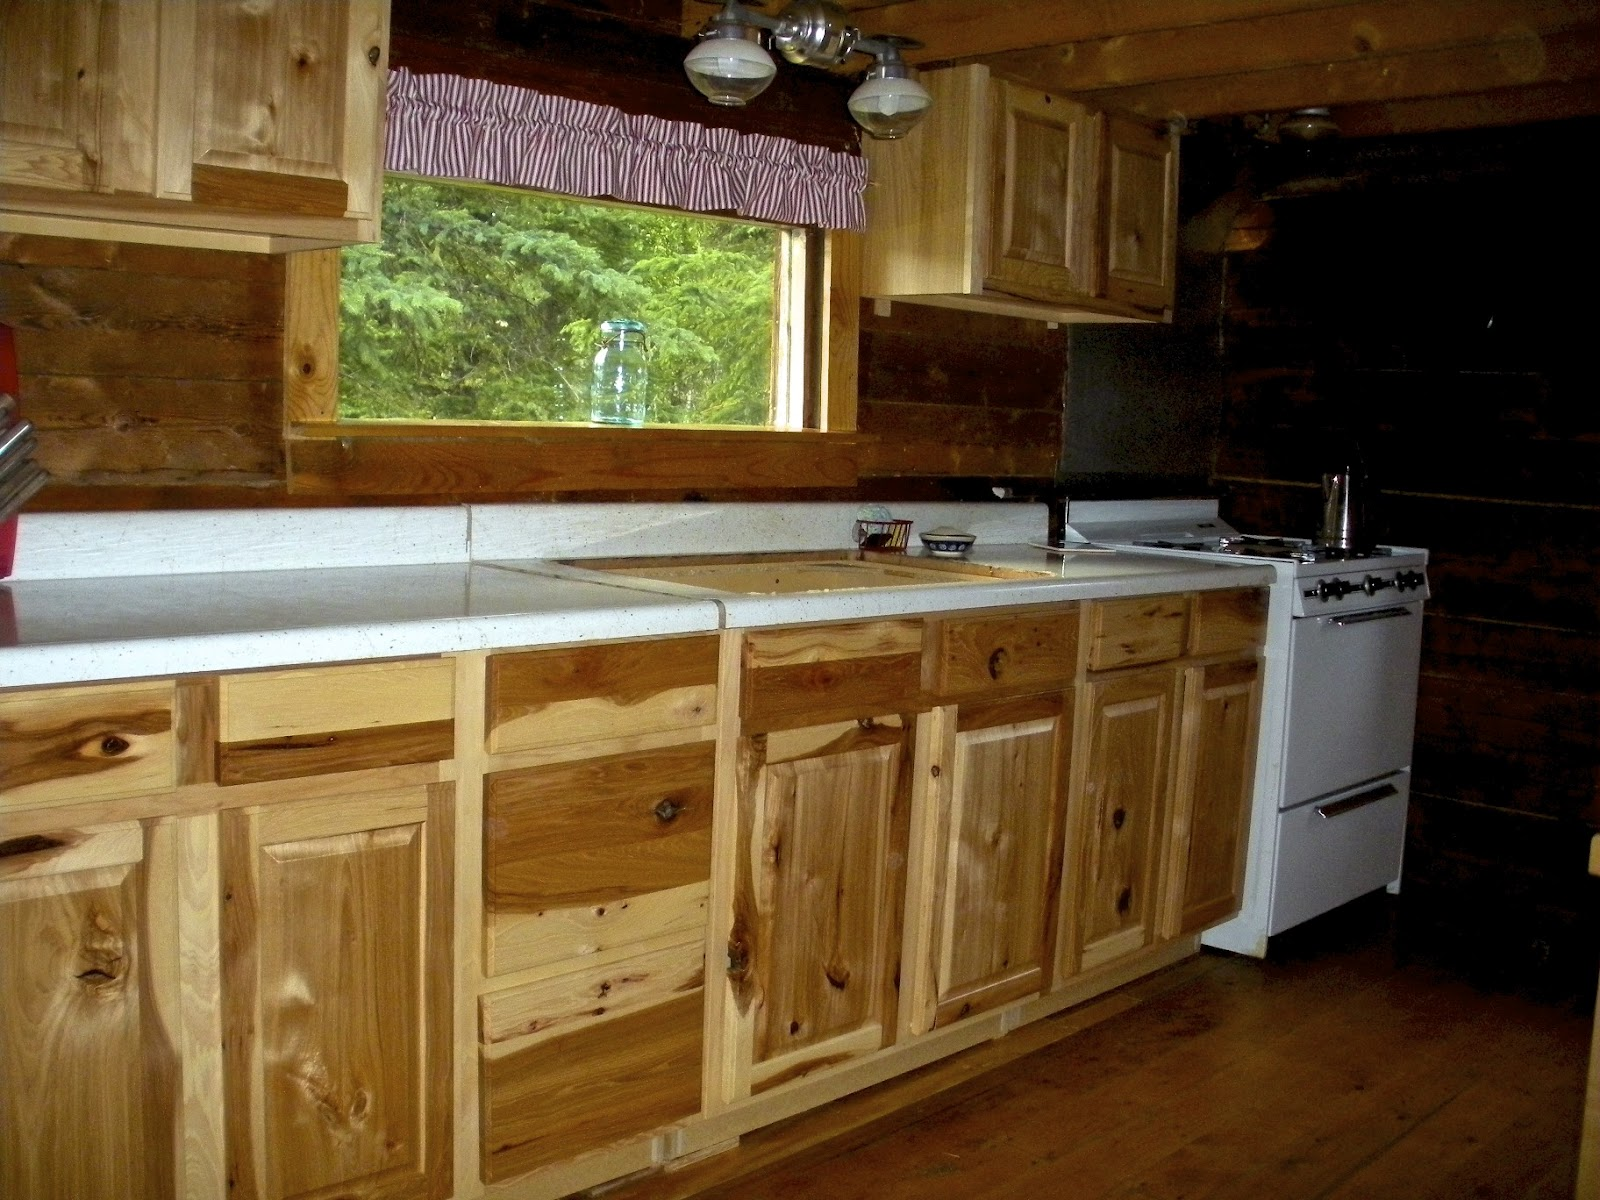 Lowes kitchen cabinets recommendation of the day home for Cabinetry kitchen cabinets